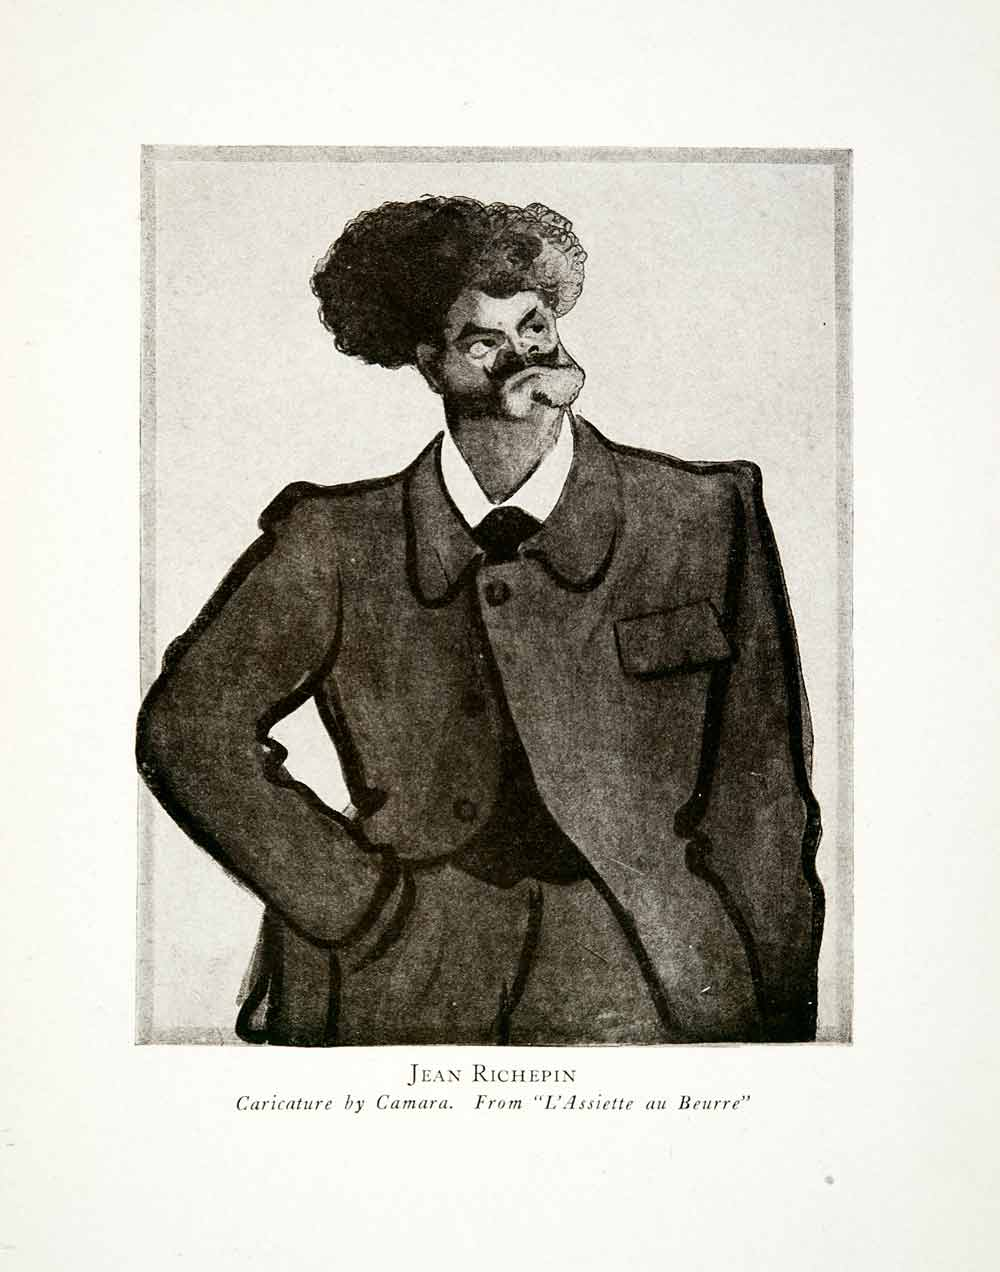 1928 Print Jean Richepin Thomas Camara Caricature Cartoon Writer Dramatist XGCB1